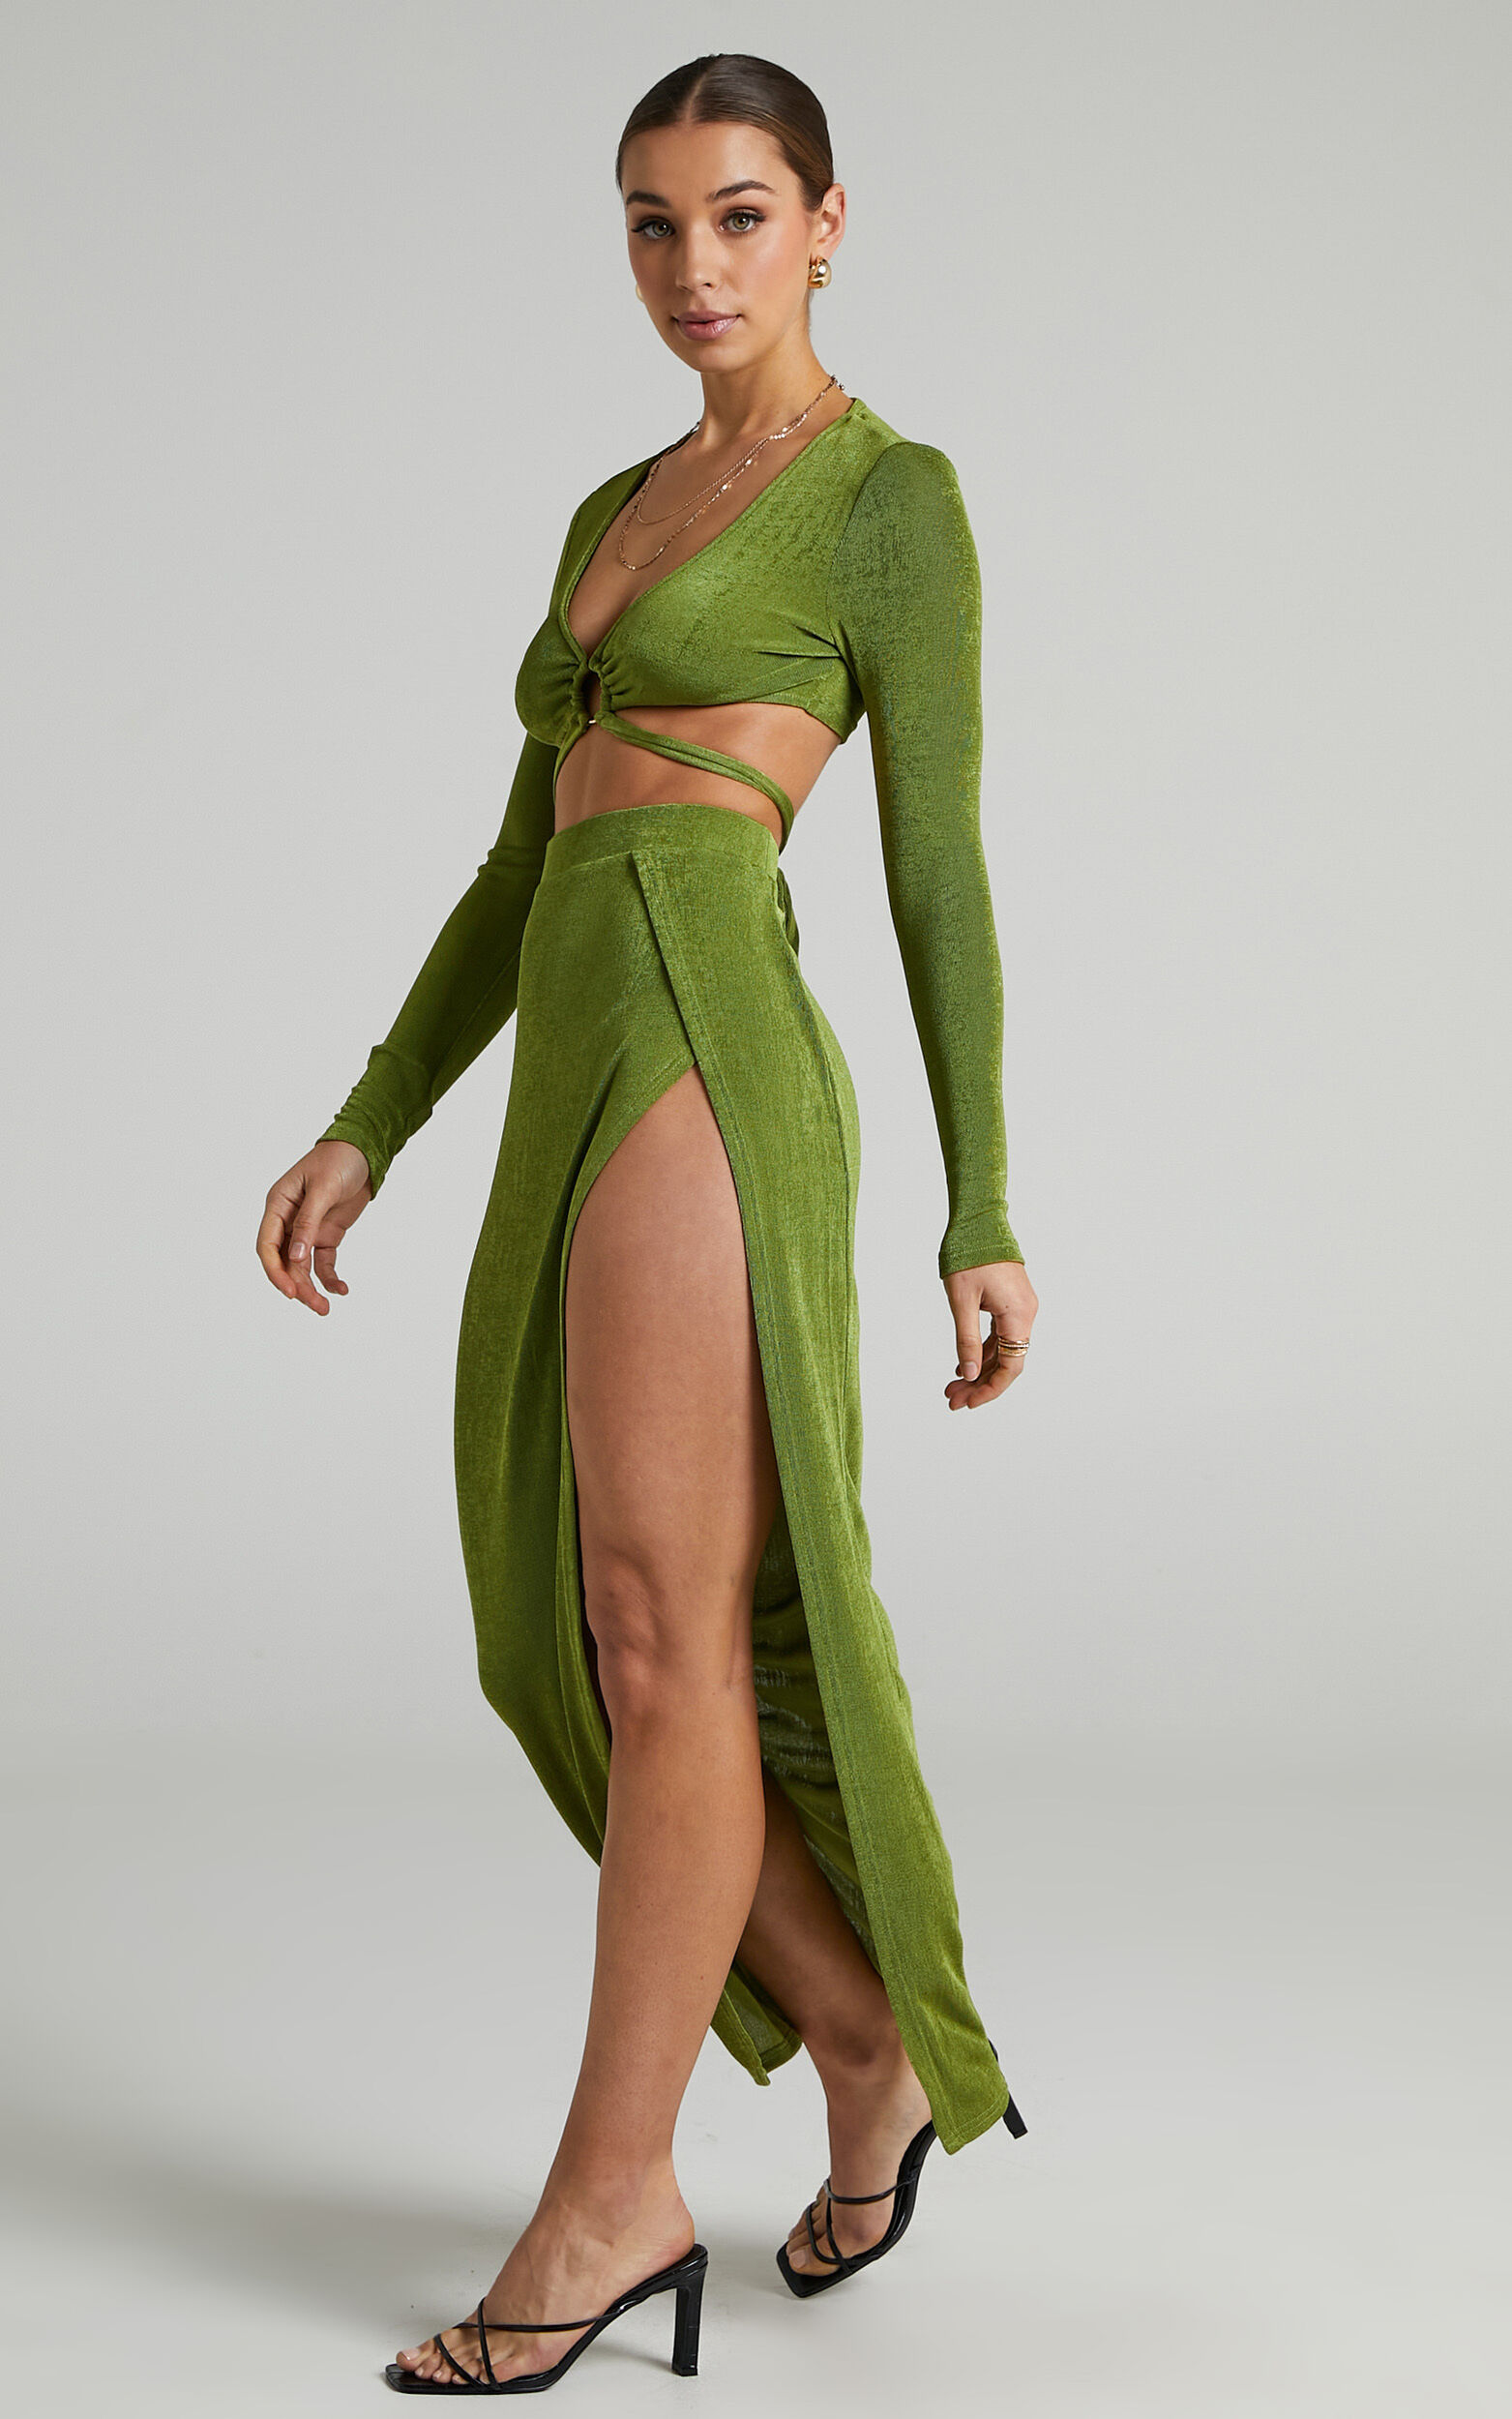 Runaway The Label - Meile Maxi Skirt in Grass - L, GRN1, super-hi-res image number null